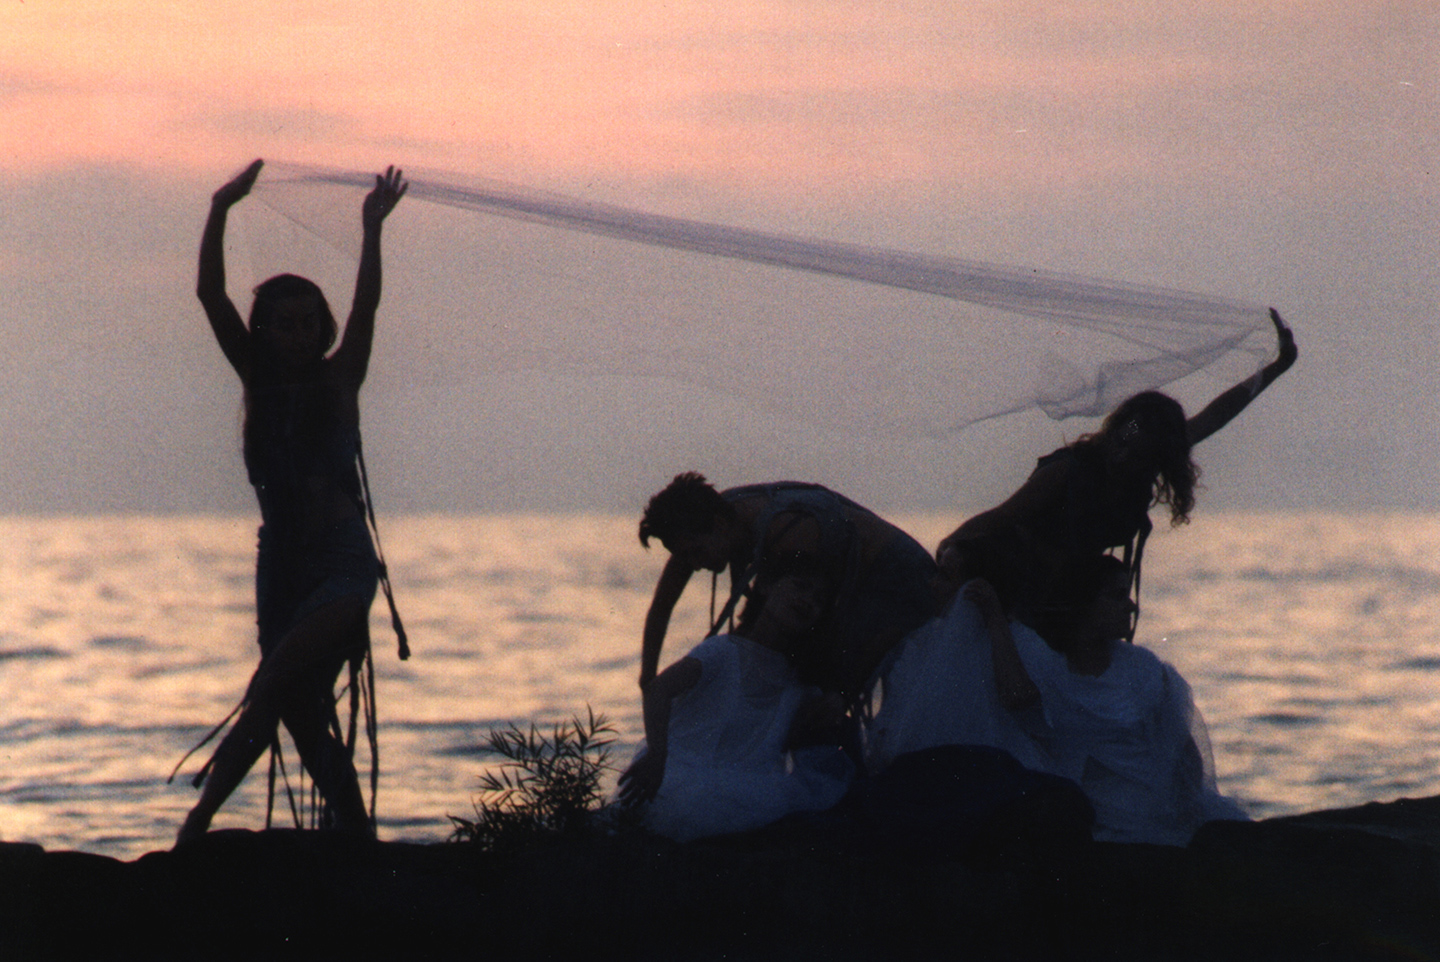 Image of 3 silouettes of MorrisonDancers in front of Lake Erie in their Erie Sirens performance